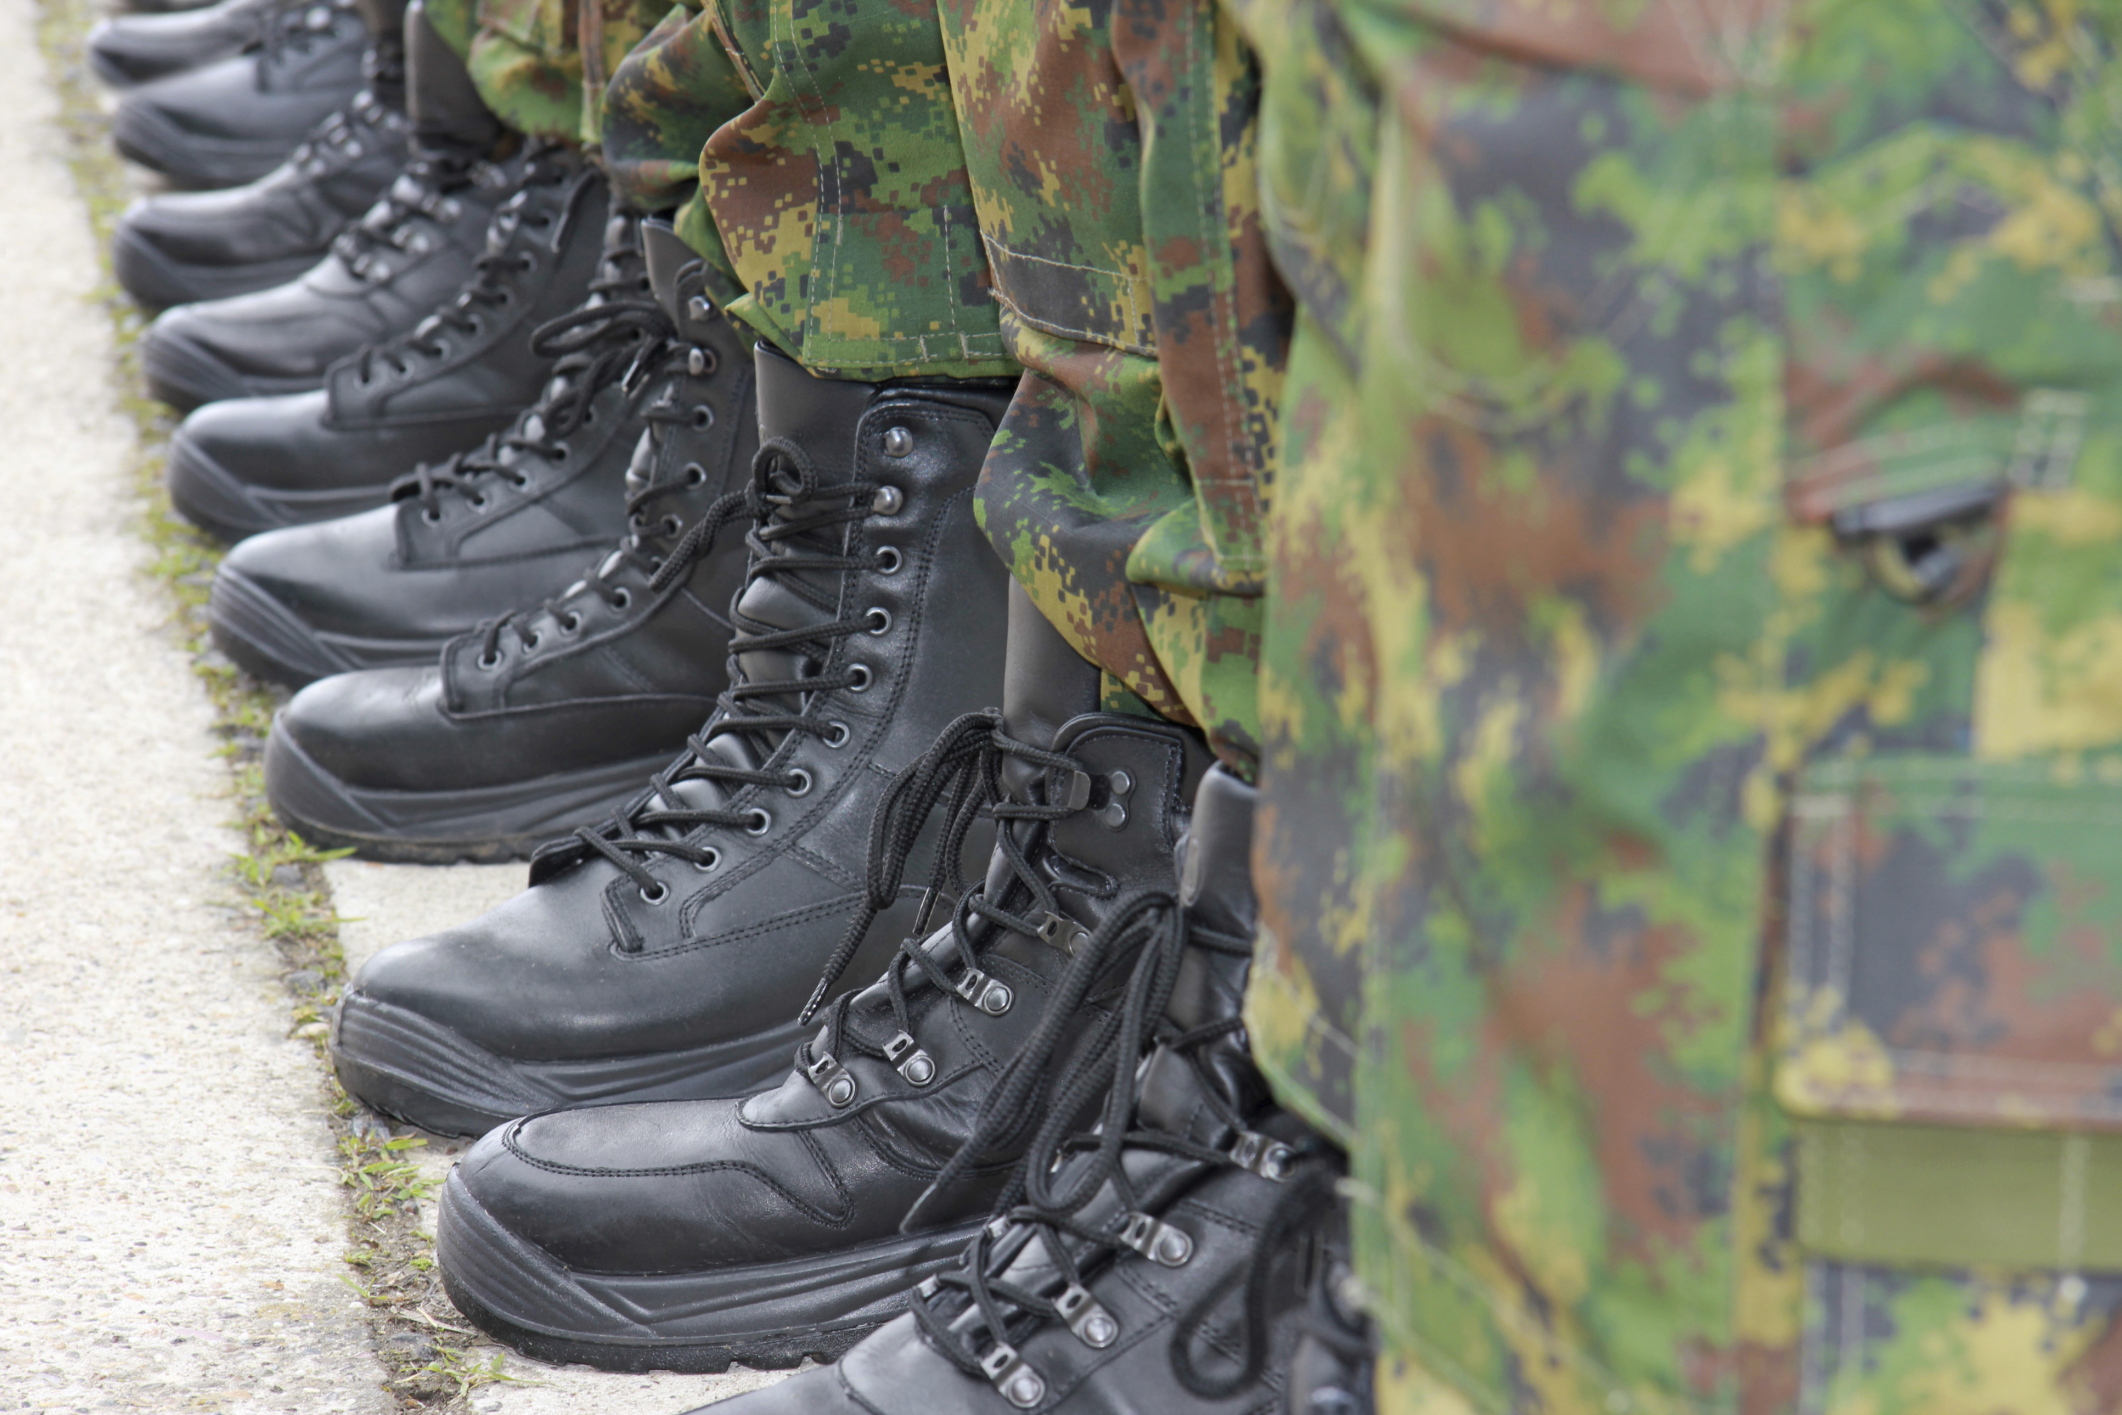 Boot Camps & Military Schools in